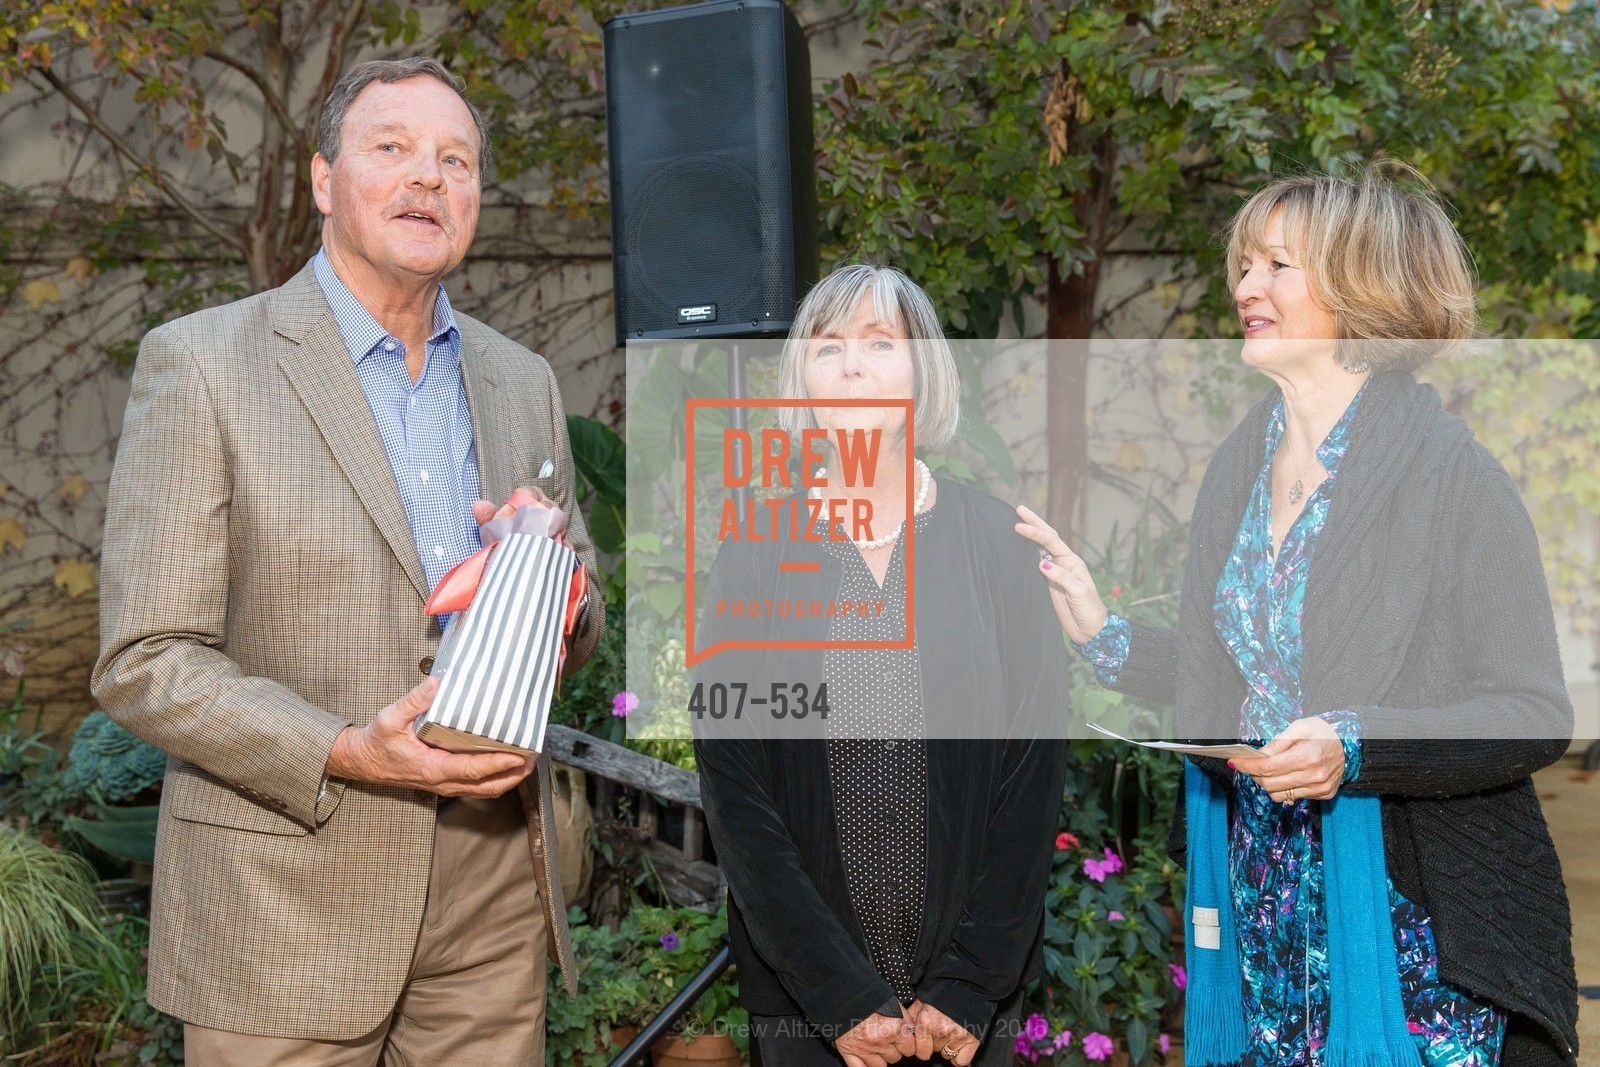 John Barrett, Millie Barrett, Anne Coyne, Perfecting Pairings - Food, Wine and Stories, Chateau St Jean, Kenwood, November 14th, 2015,Drew Altizer, Drew Altizer Photography, full-service agency, private events, San Francisco photographer, photographer california